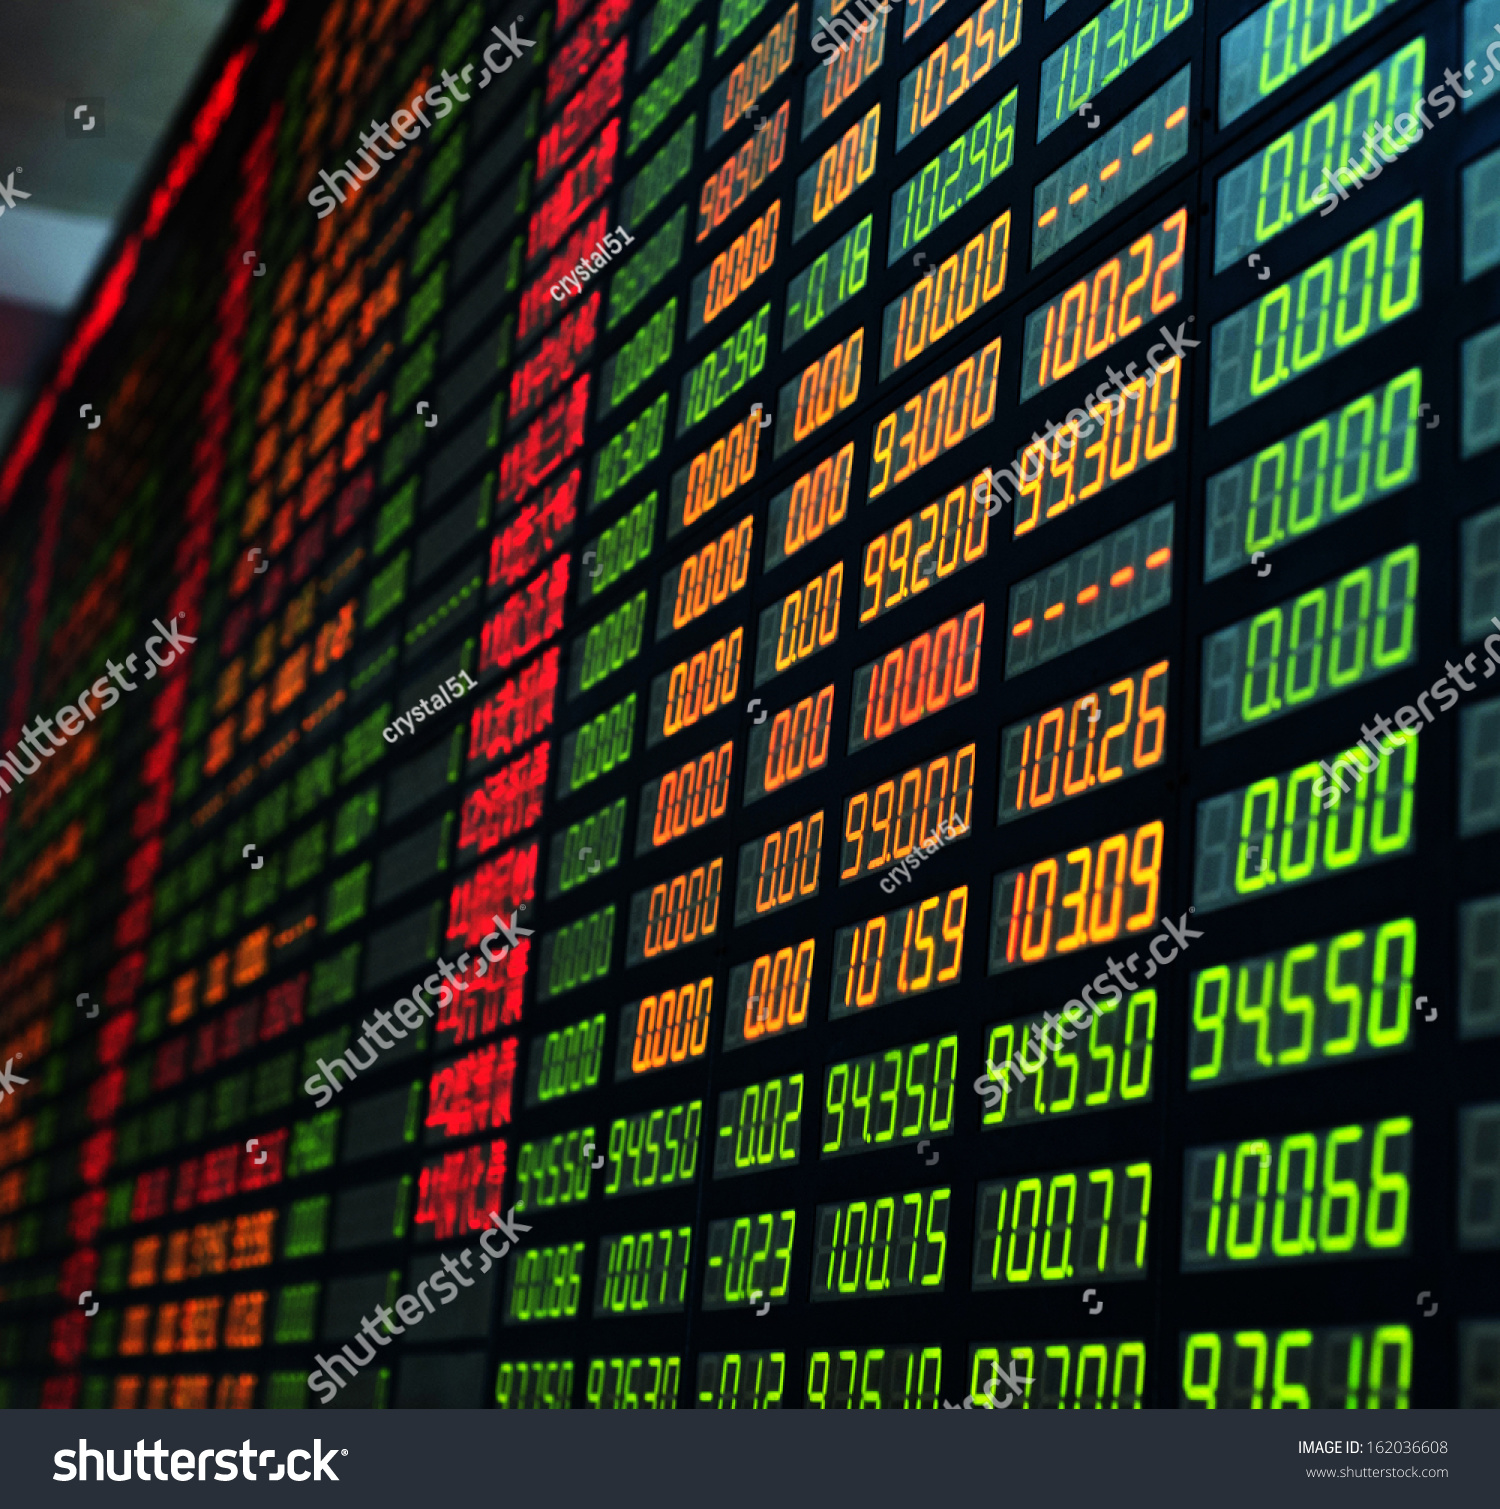 Market Quotes: Display Of Stock Market Quotes In China Stock Photo